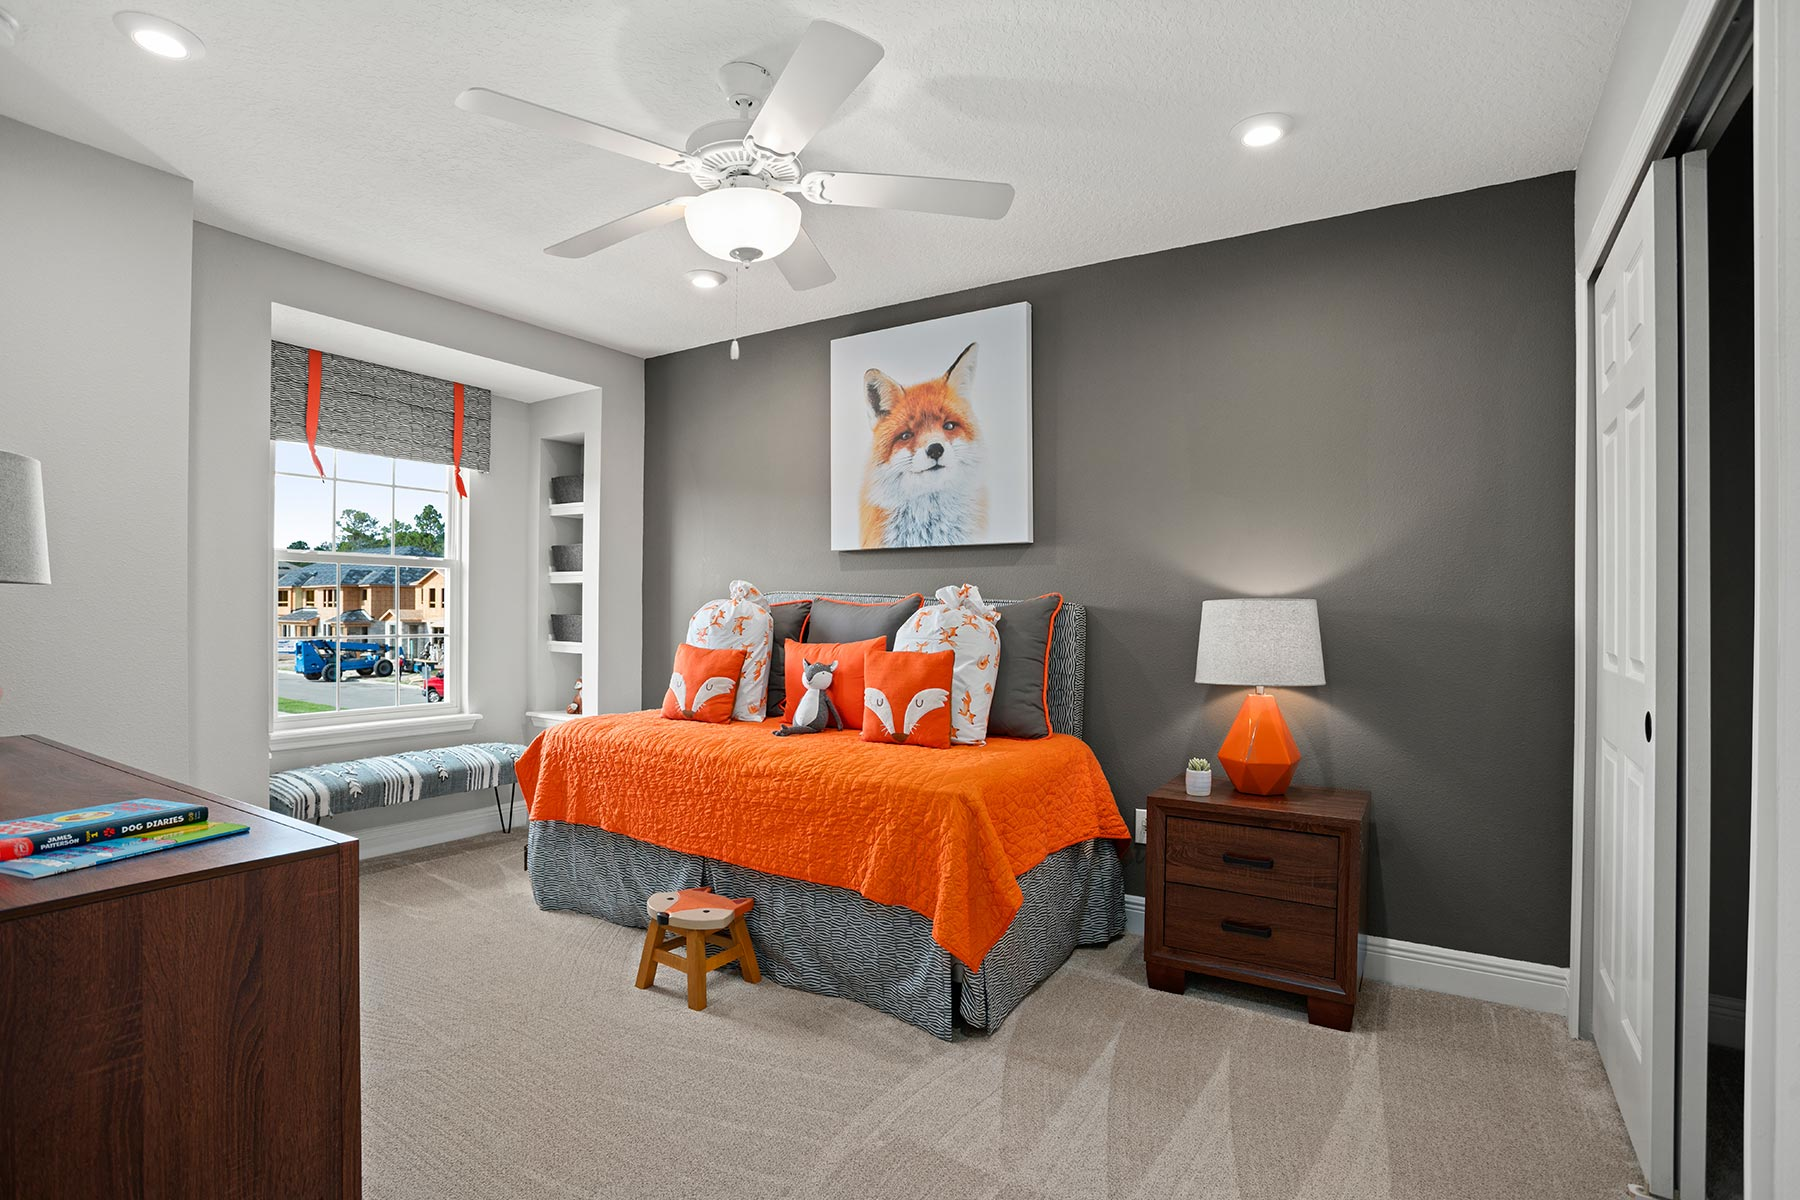 Amber Plan Bedroom at Legado in Windermere Florida by Mattamy Homes